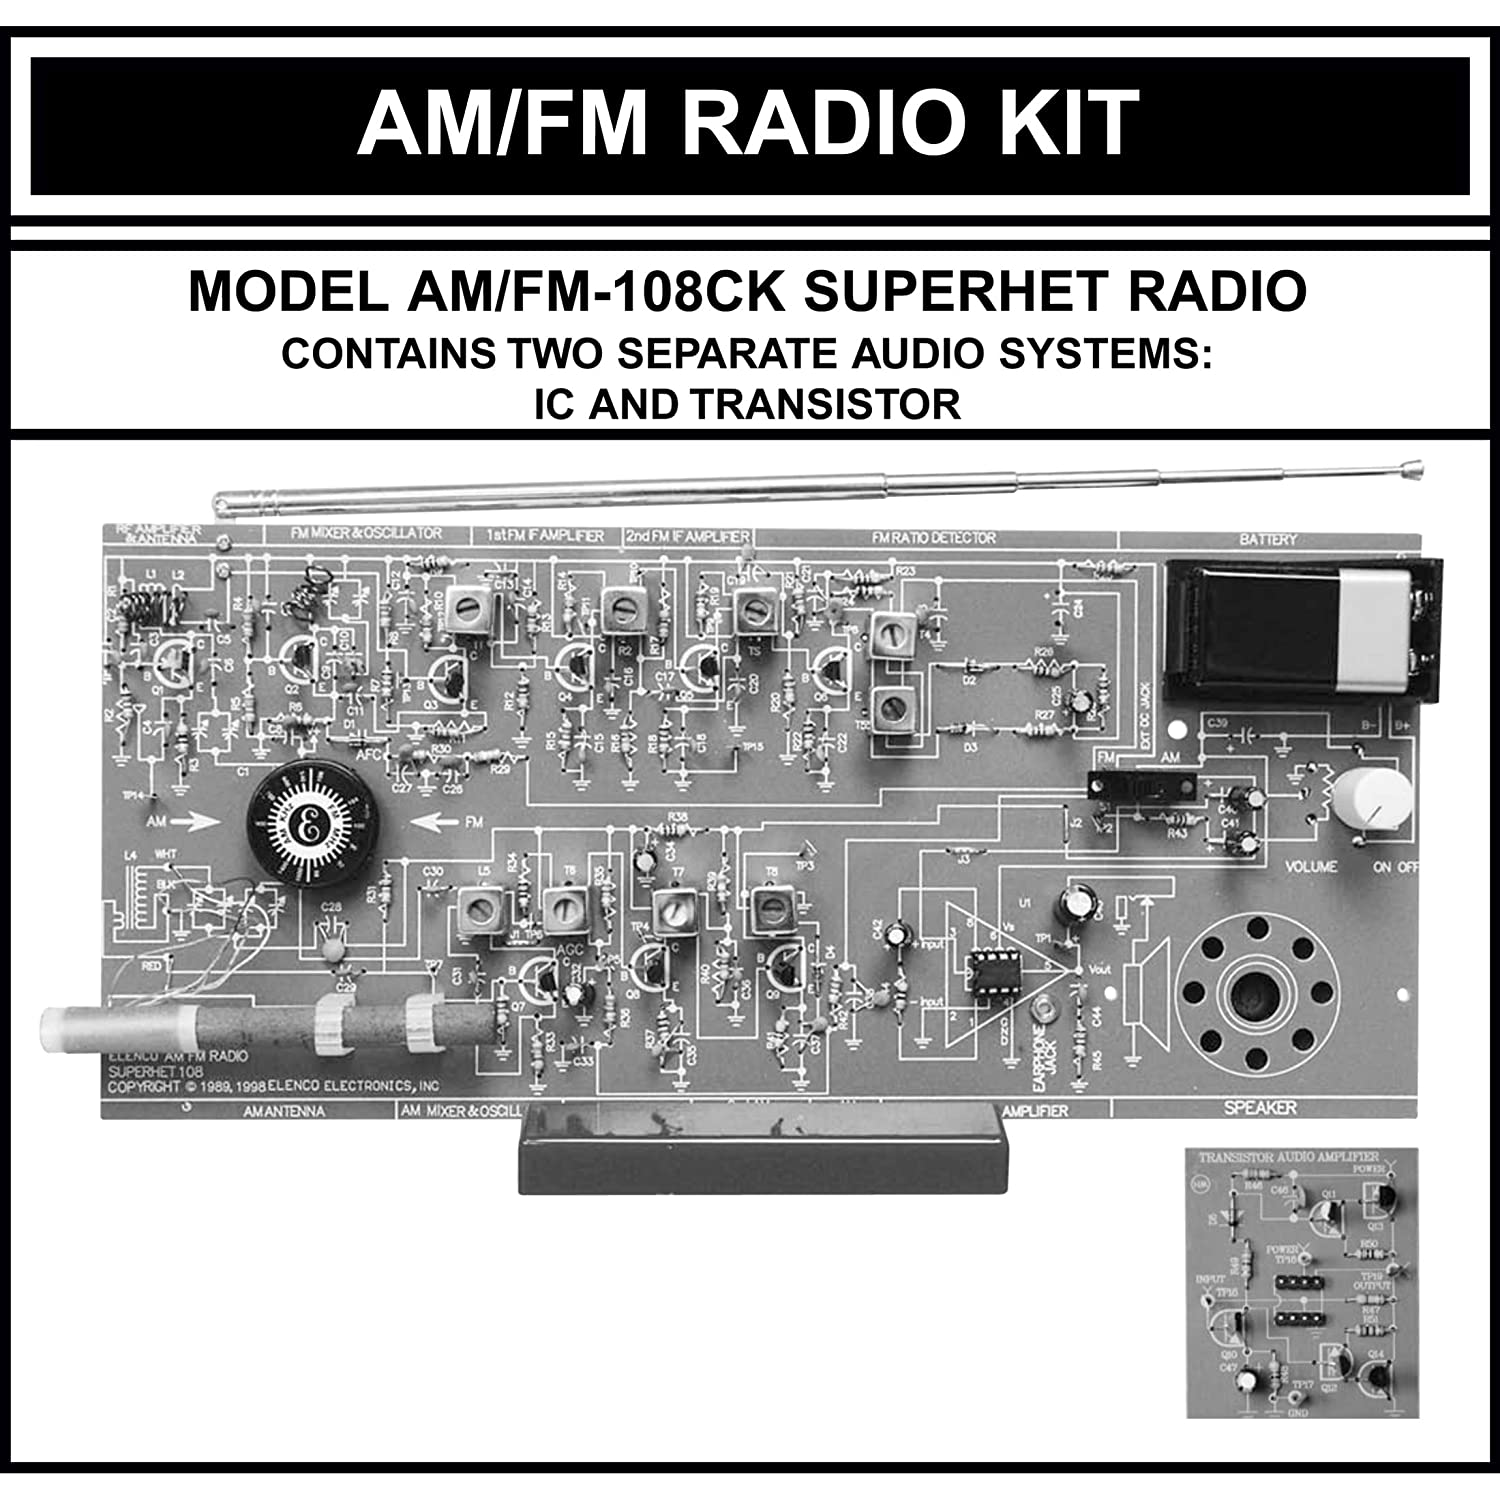 Amazon.com: Elenco AM/FM Radio Kit (Combines ICs & Transistors): Toys &  Games